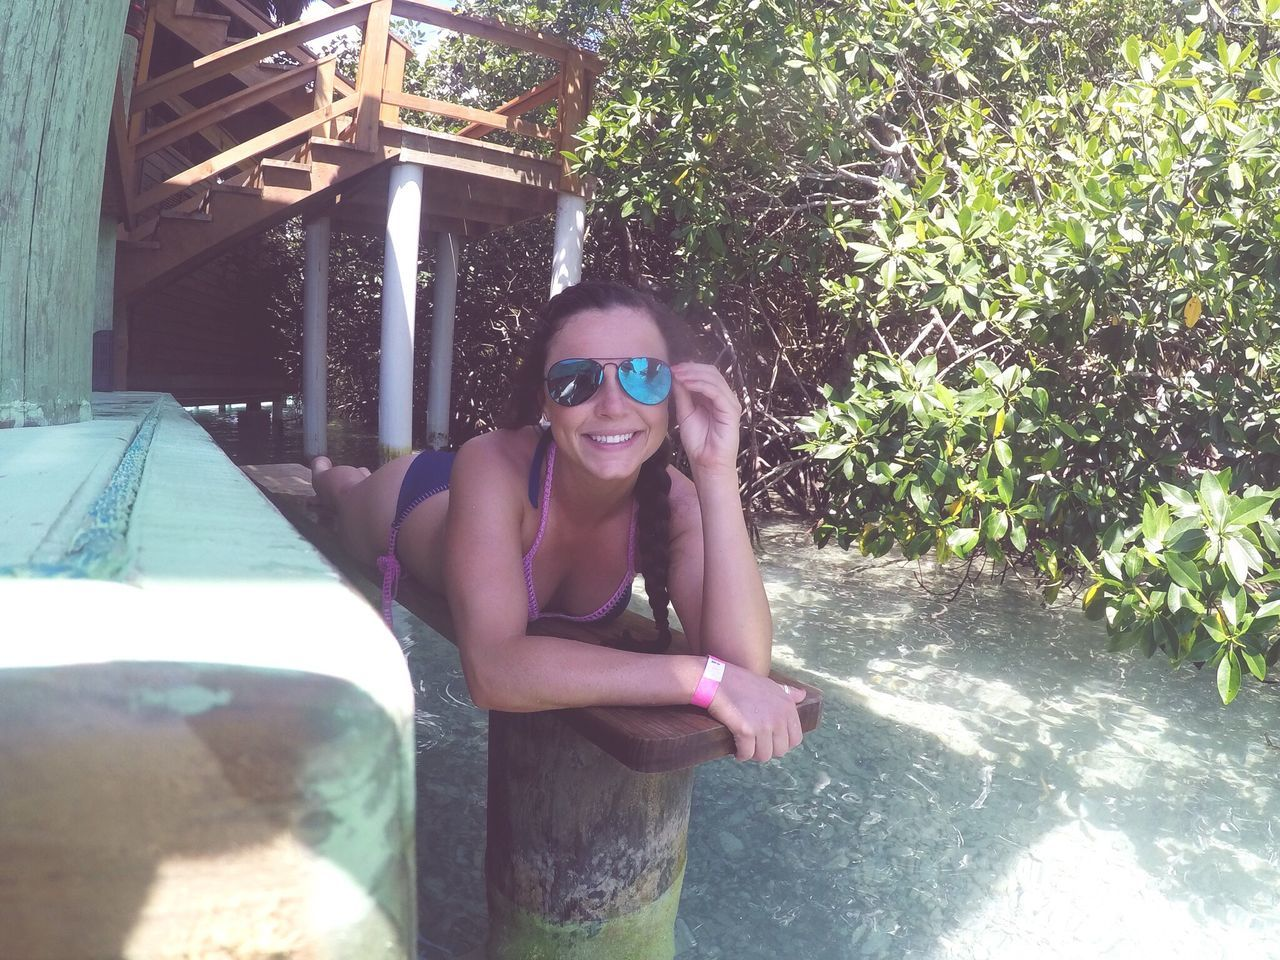 Beach Young Women Sunglasses Beautiful Woman Portrait Lifestyles Sunlight One Person Smiling Happiness Outdoors Day Young Adult Beauty Vacations Water Picture Looking At Camera Real People Leisure Activity Front View Tree Honduras Pretty Pretty Girl First Eyeem Photo